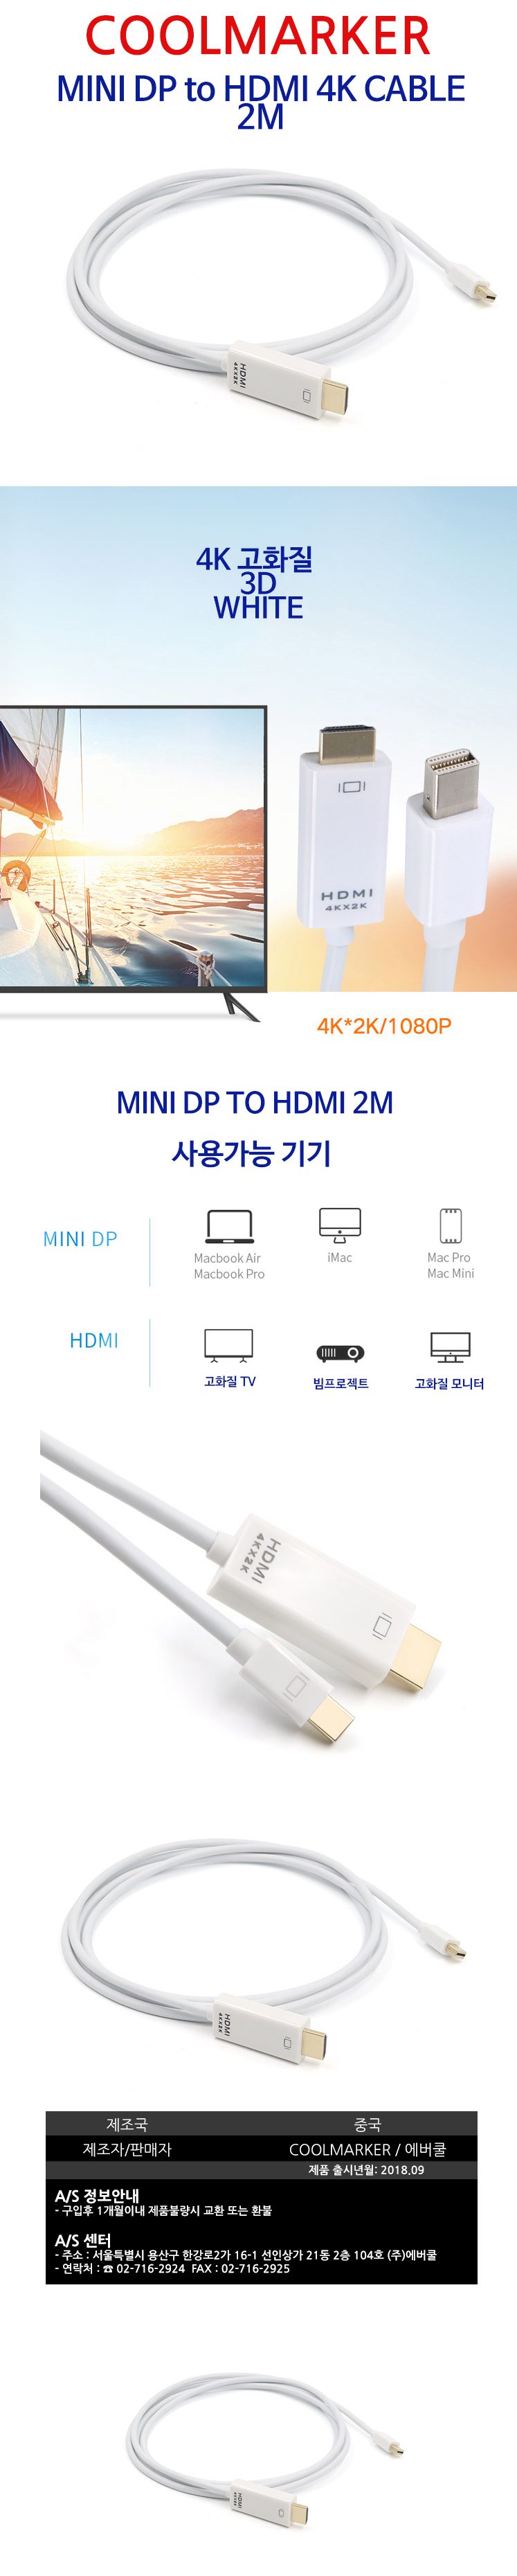 EVERCOOL COOLMARKER Mini DP to HDMI 변환 케이블 (2m)